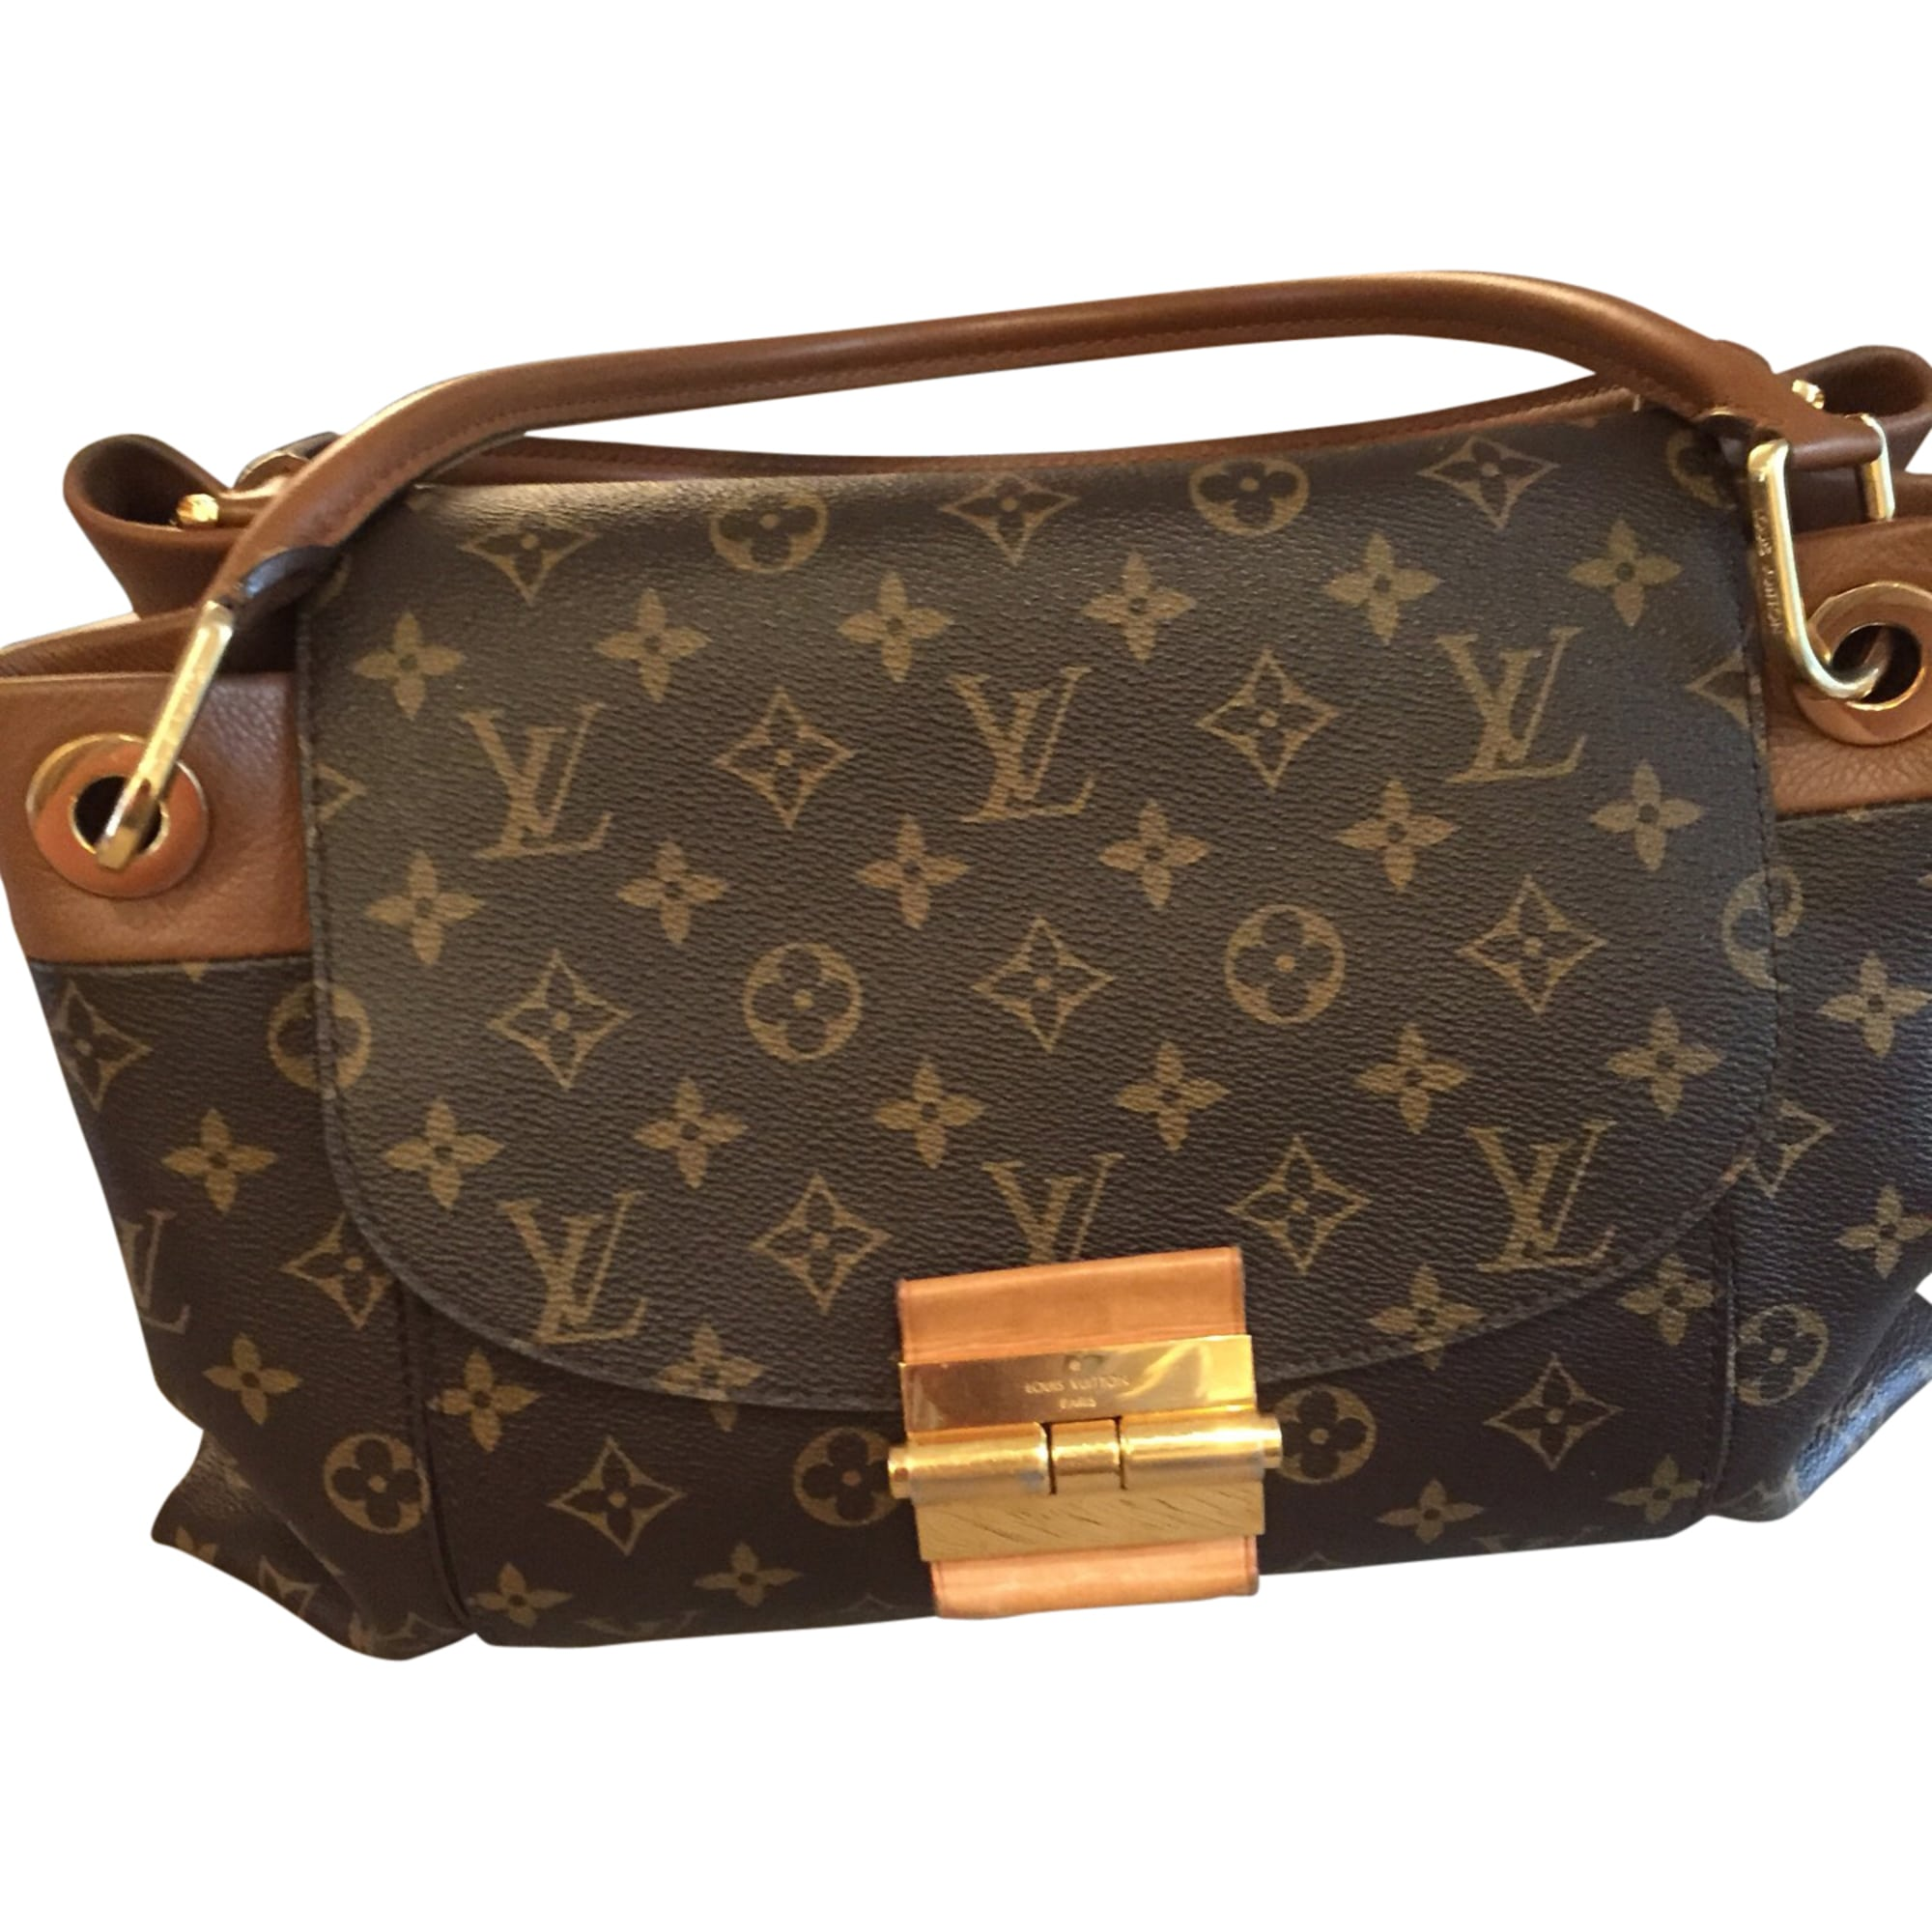 Sac à main en tissu LOUIS VUITTON Marron